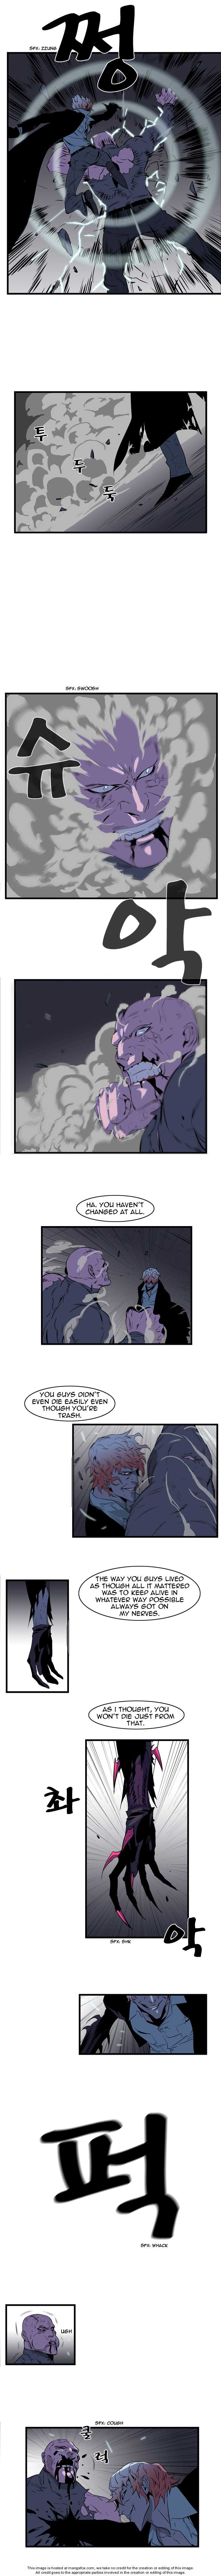 Noblesse 74 Page 2